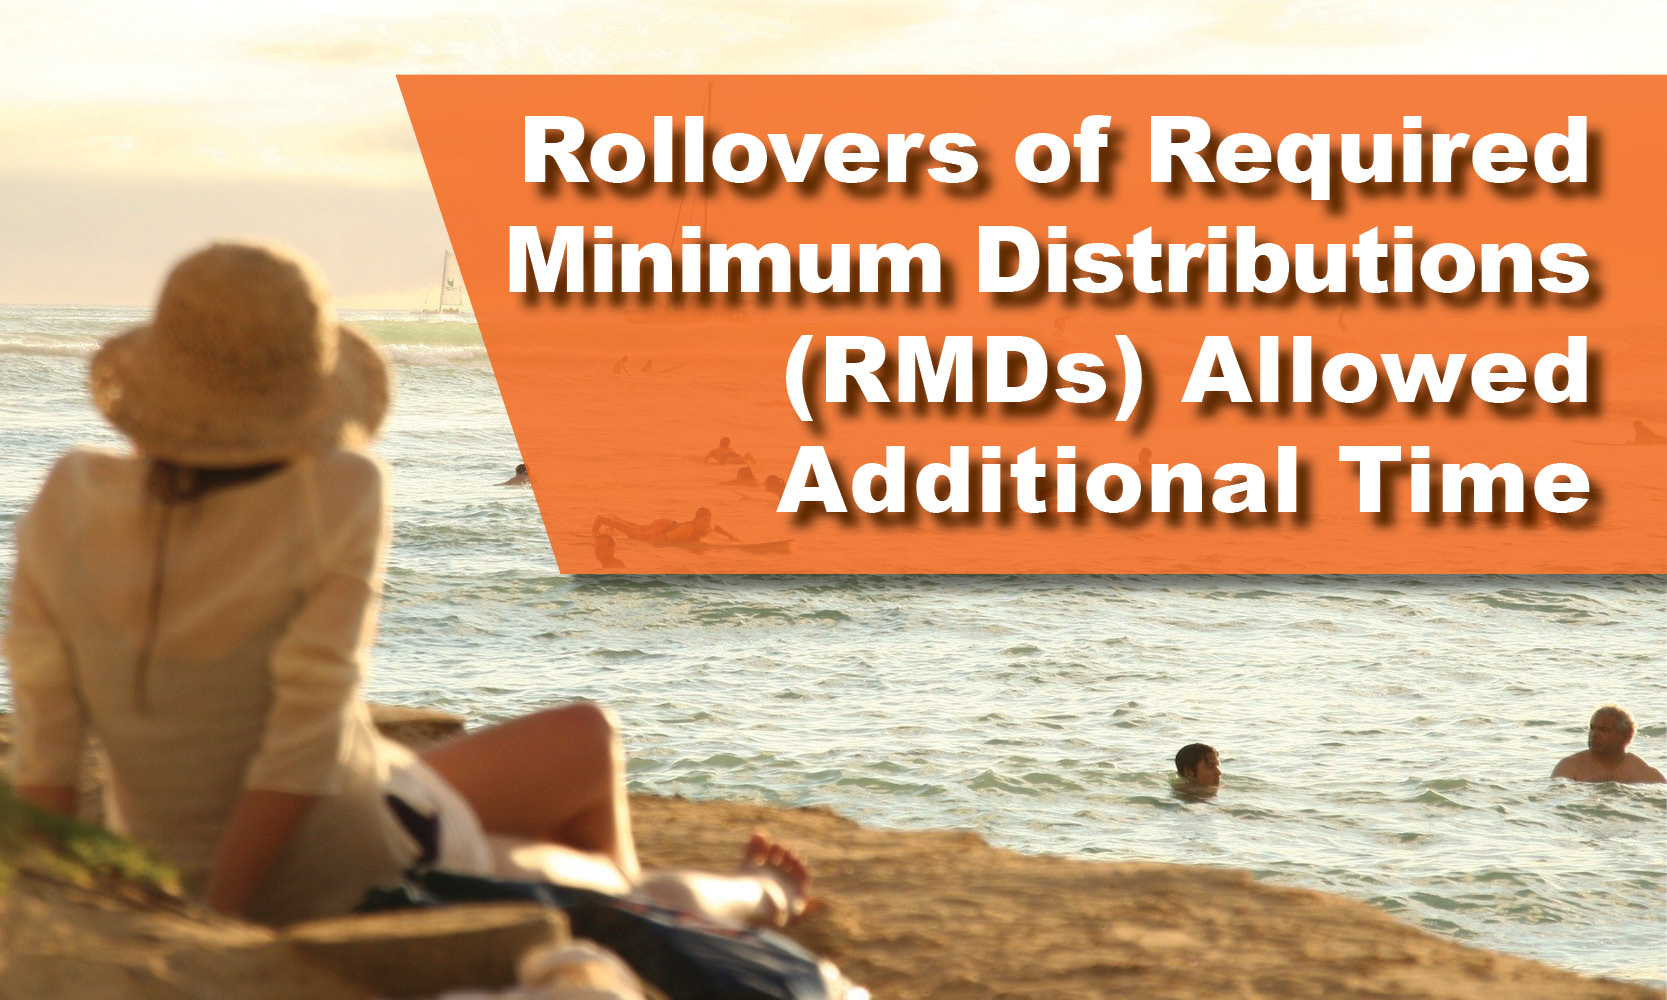 Rollovers of Required Minimum Distributions (RMDs) Allowed Additional Time